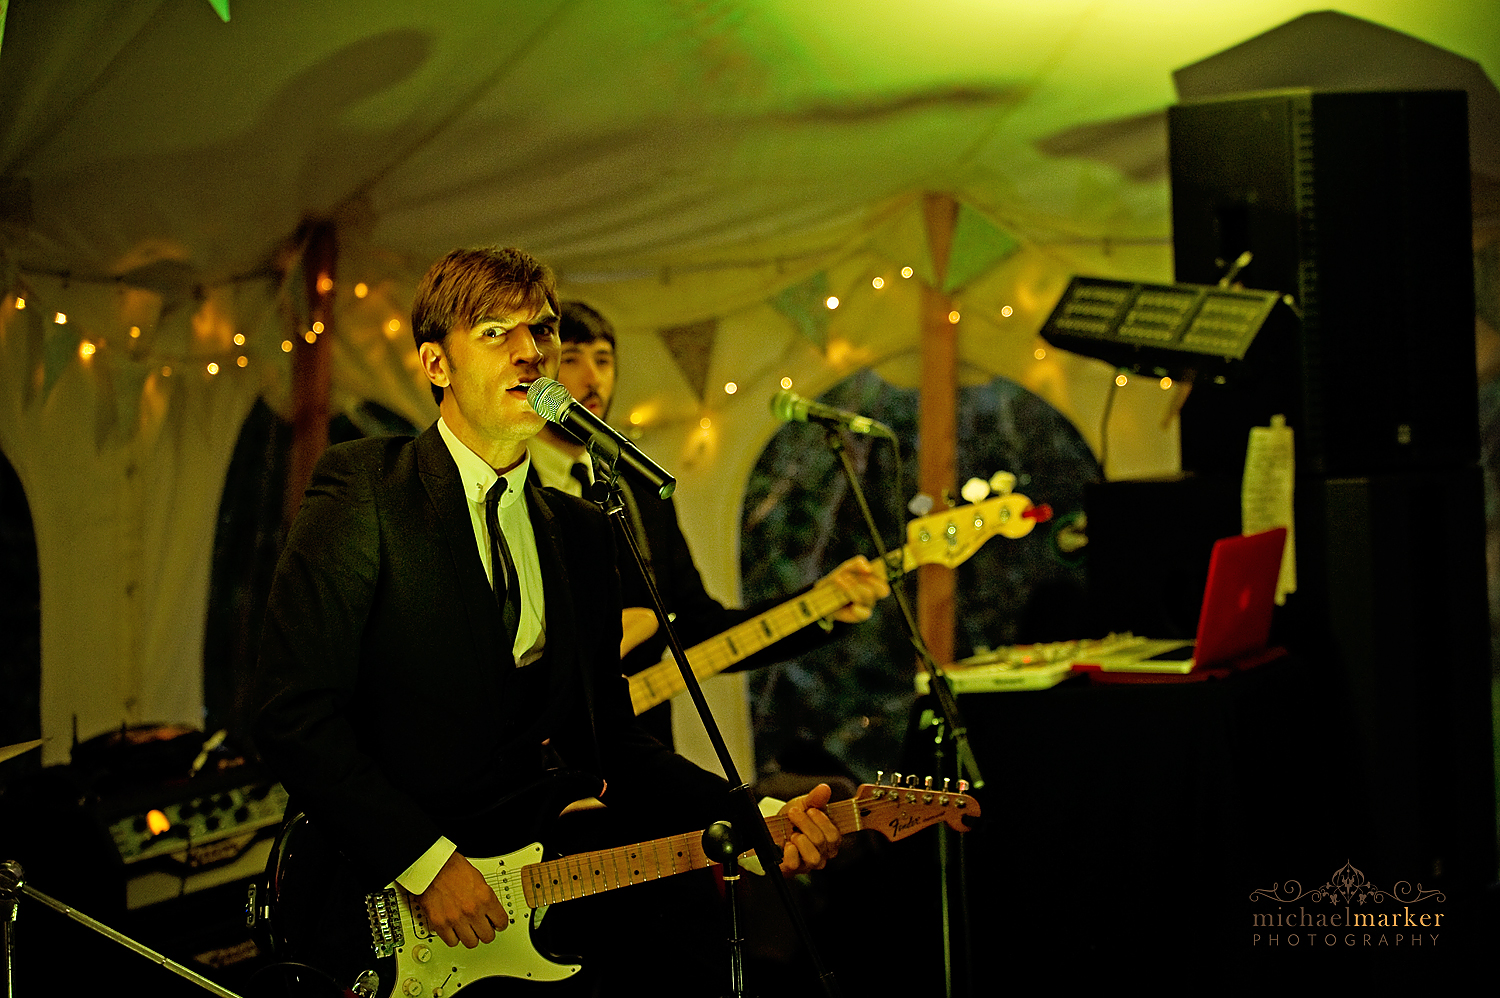 Wiltshire-wedding-band-Zoots-9